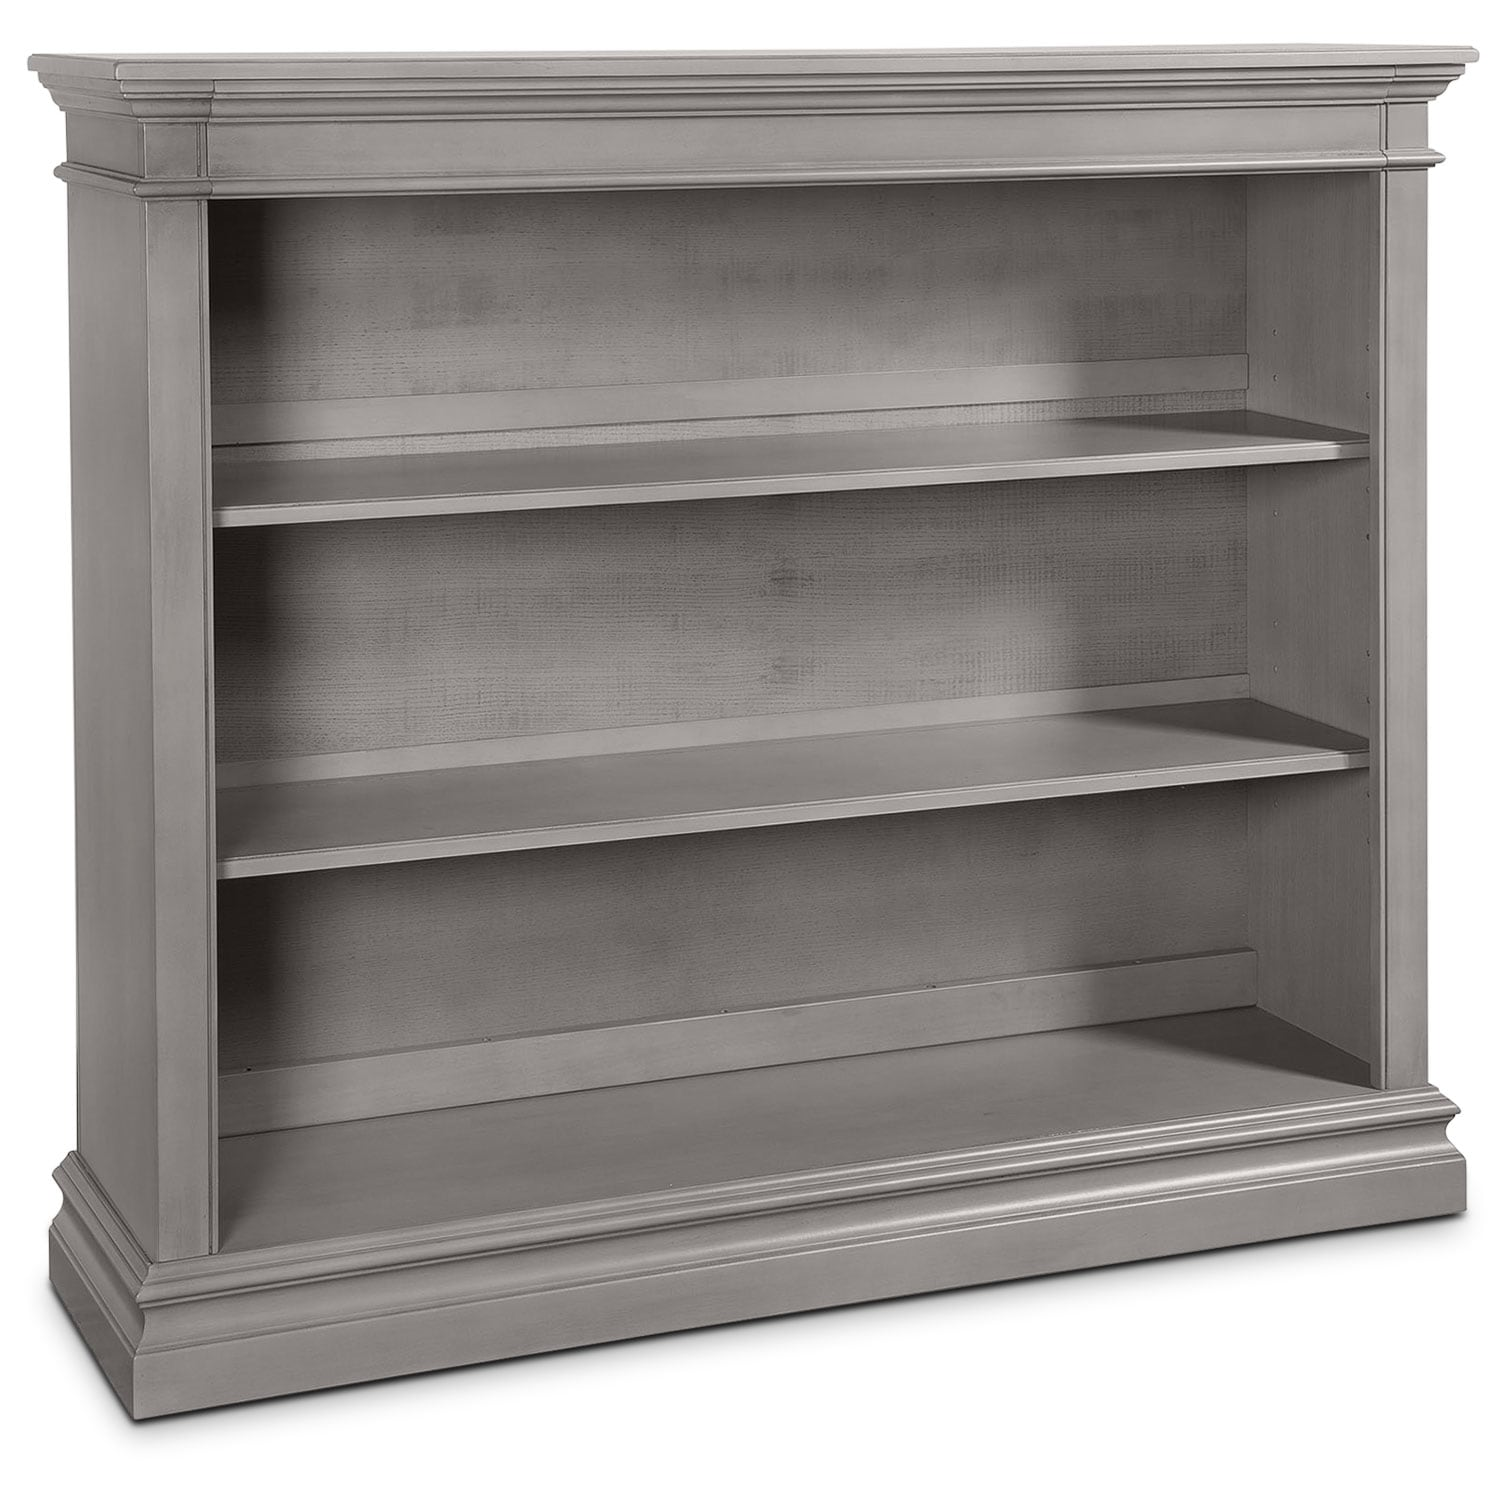 Cameron Hutch Bookcase - Cloud